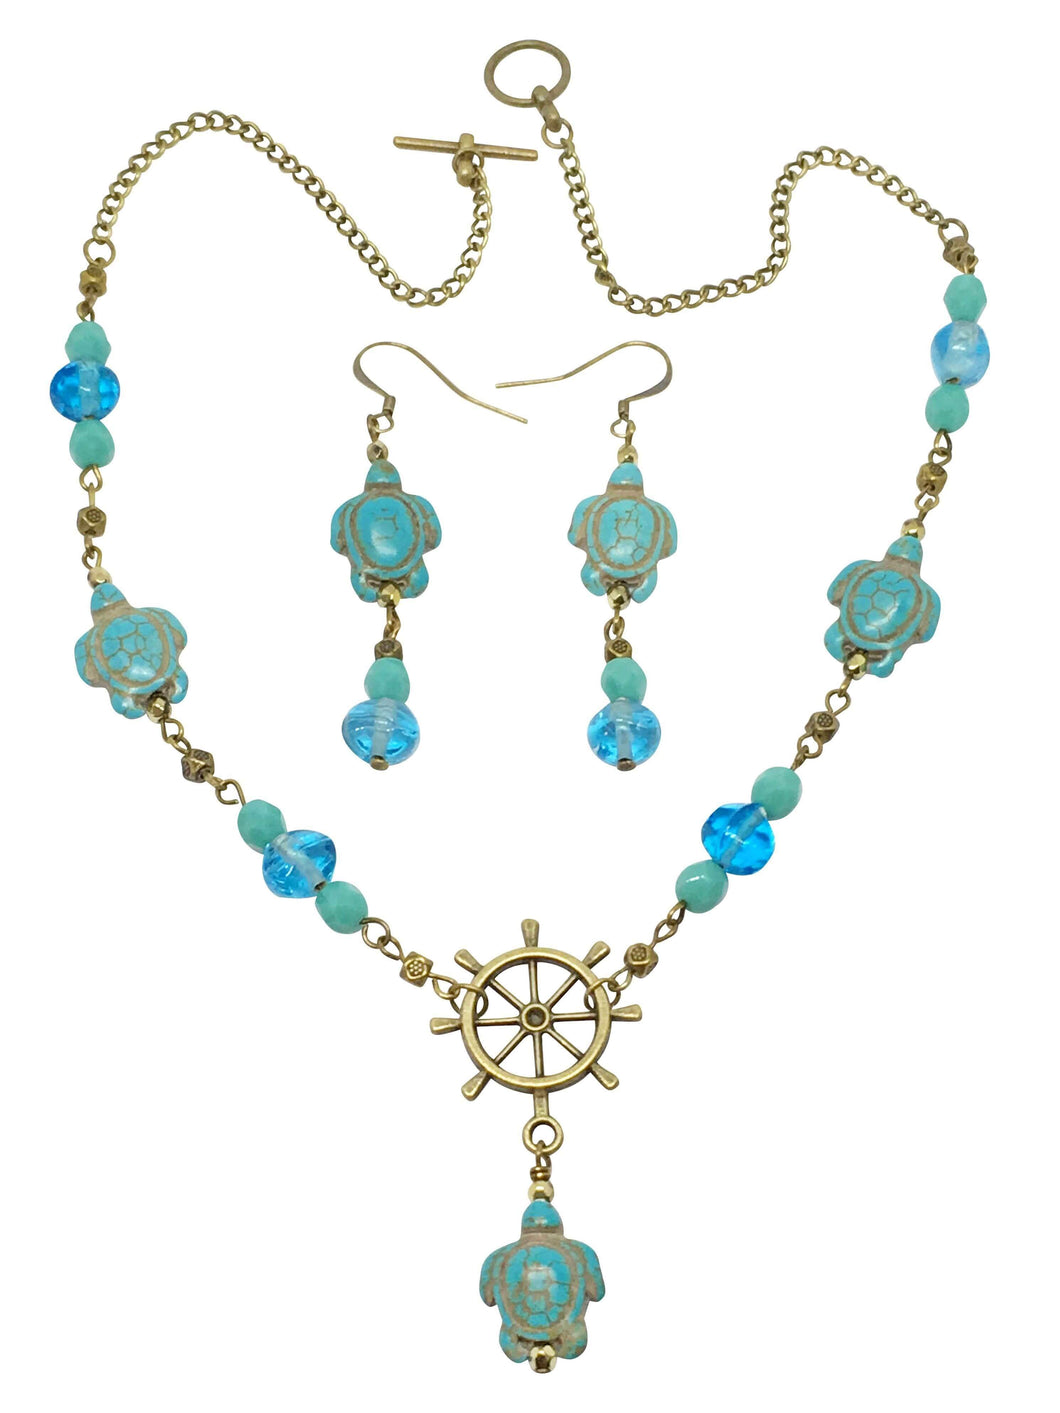 Handmade Howlite Gemstone Turtle Necklace And Earring Set